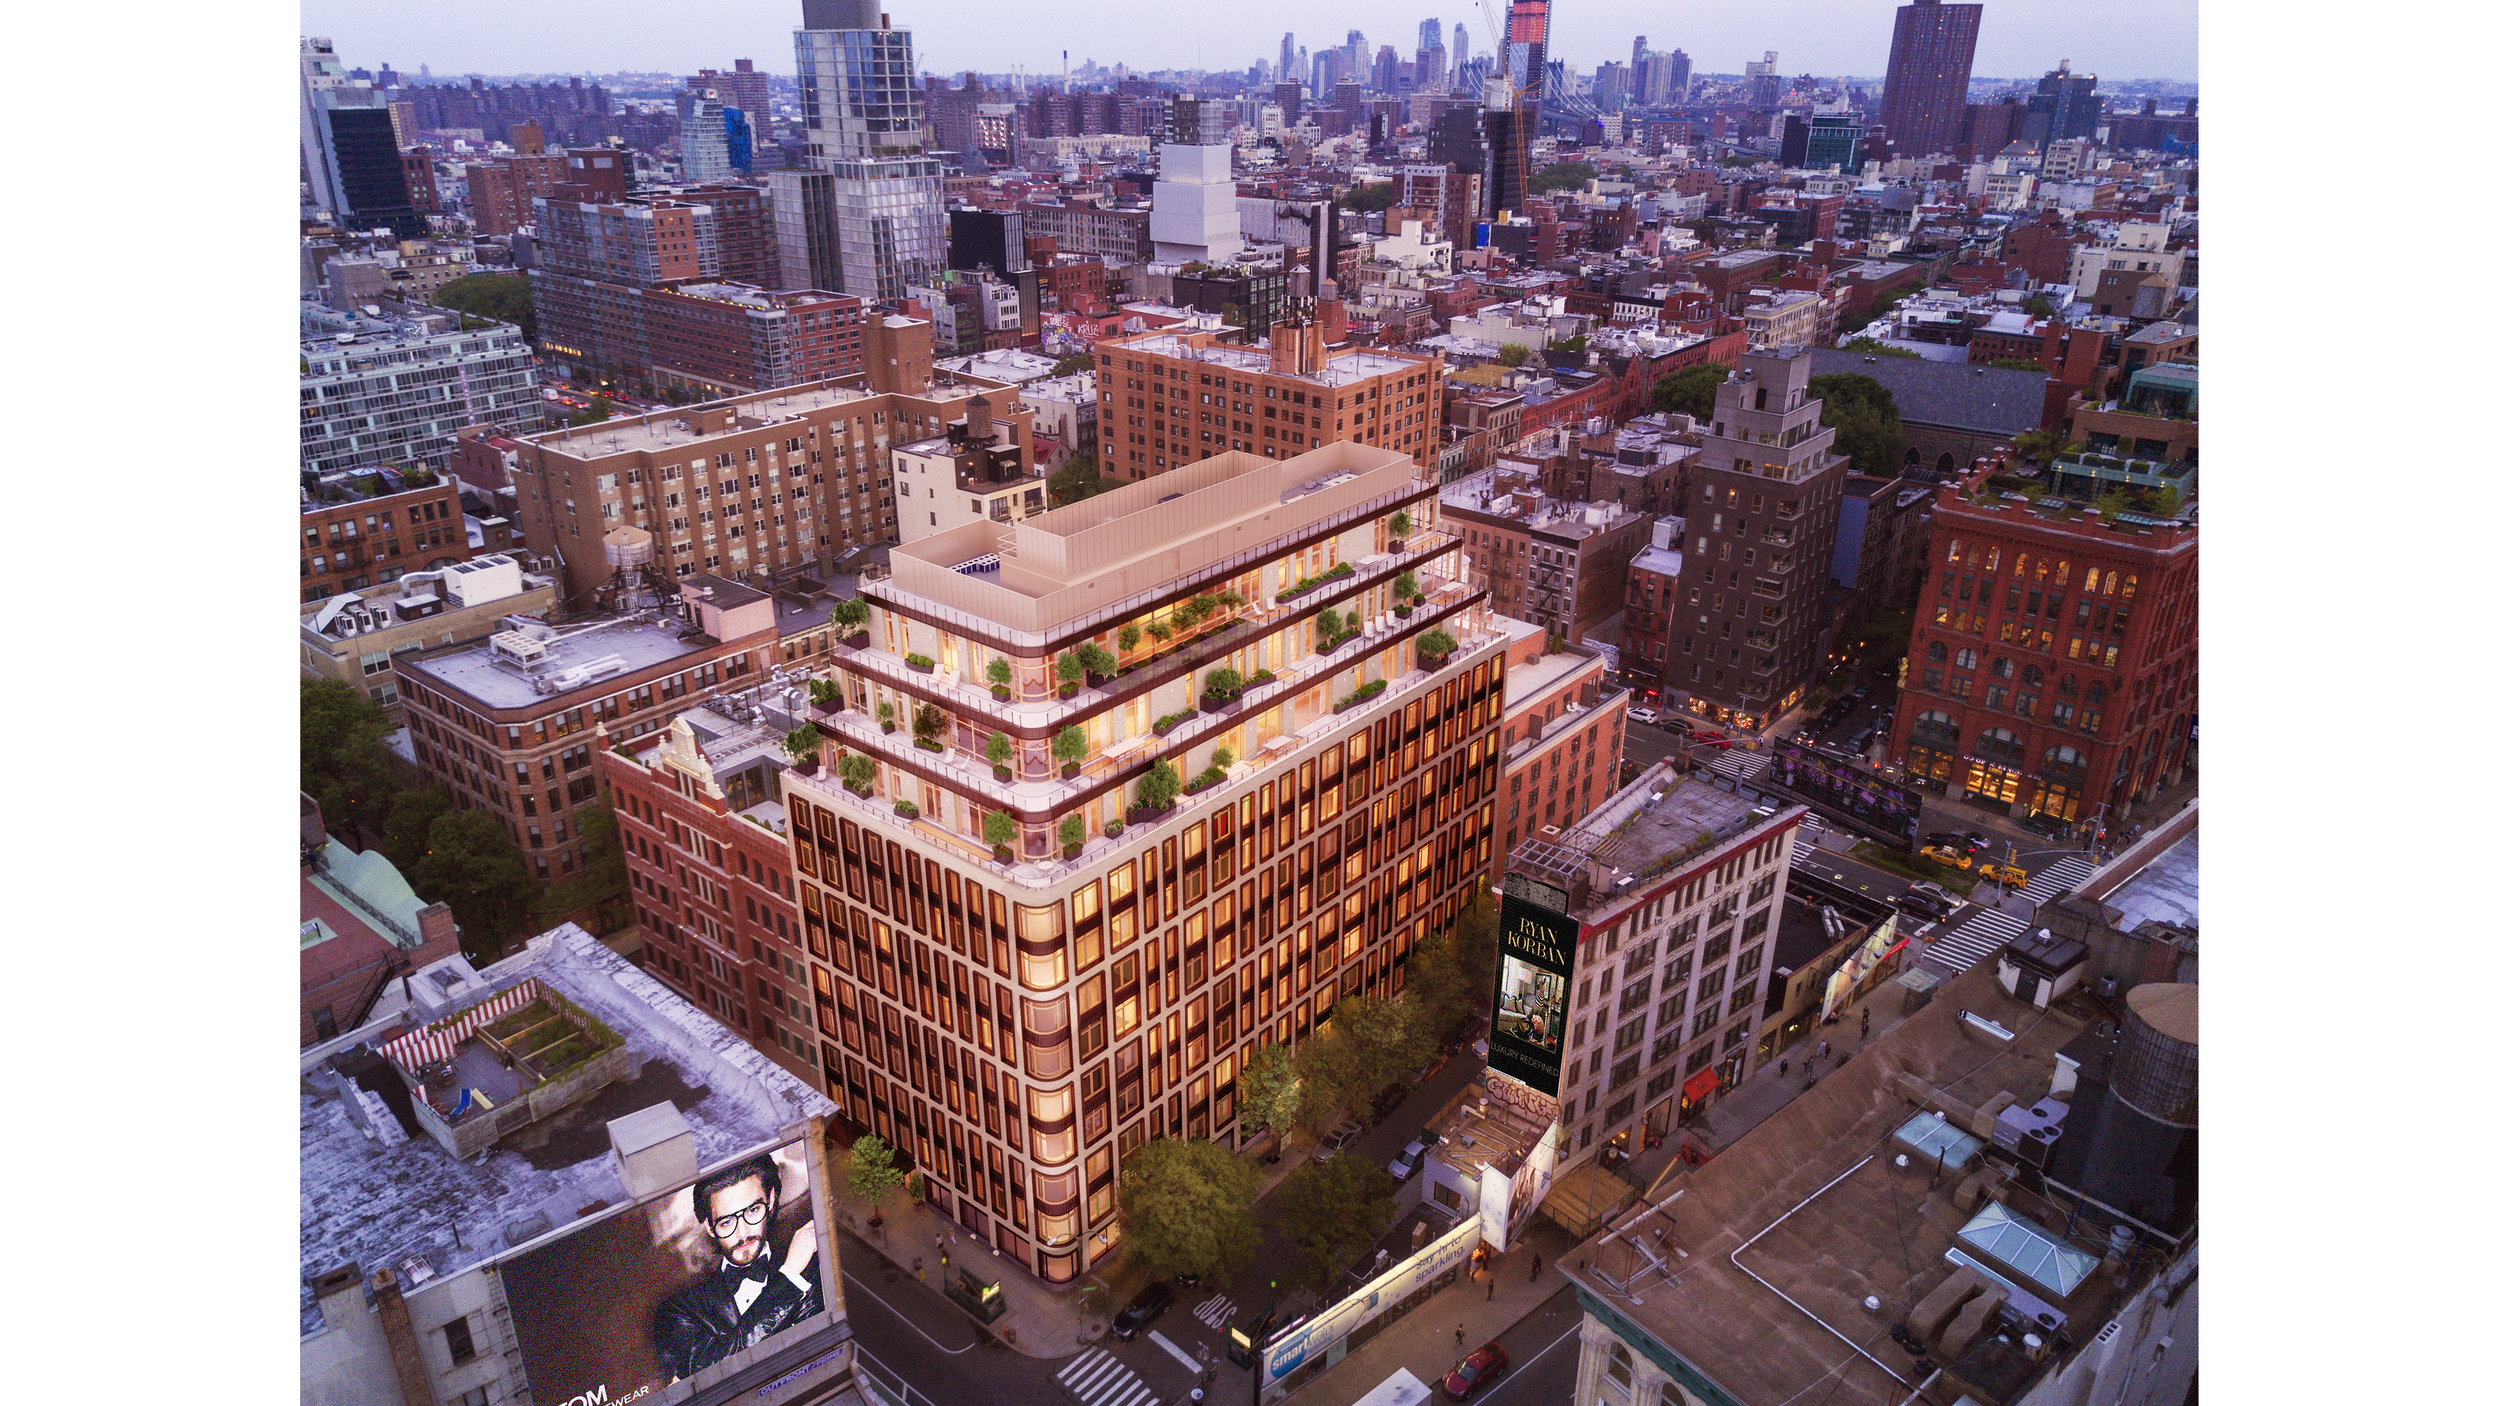 Groundbreaking Wellness Destination Clean Market To Open As First Retail Tenant At NoHo's 40 Bleecker